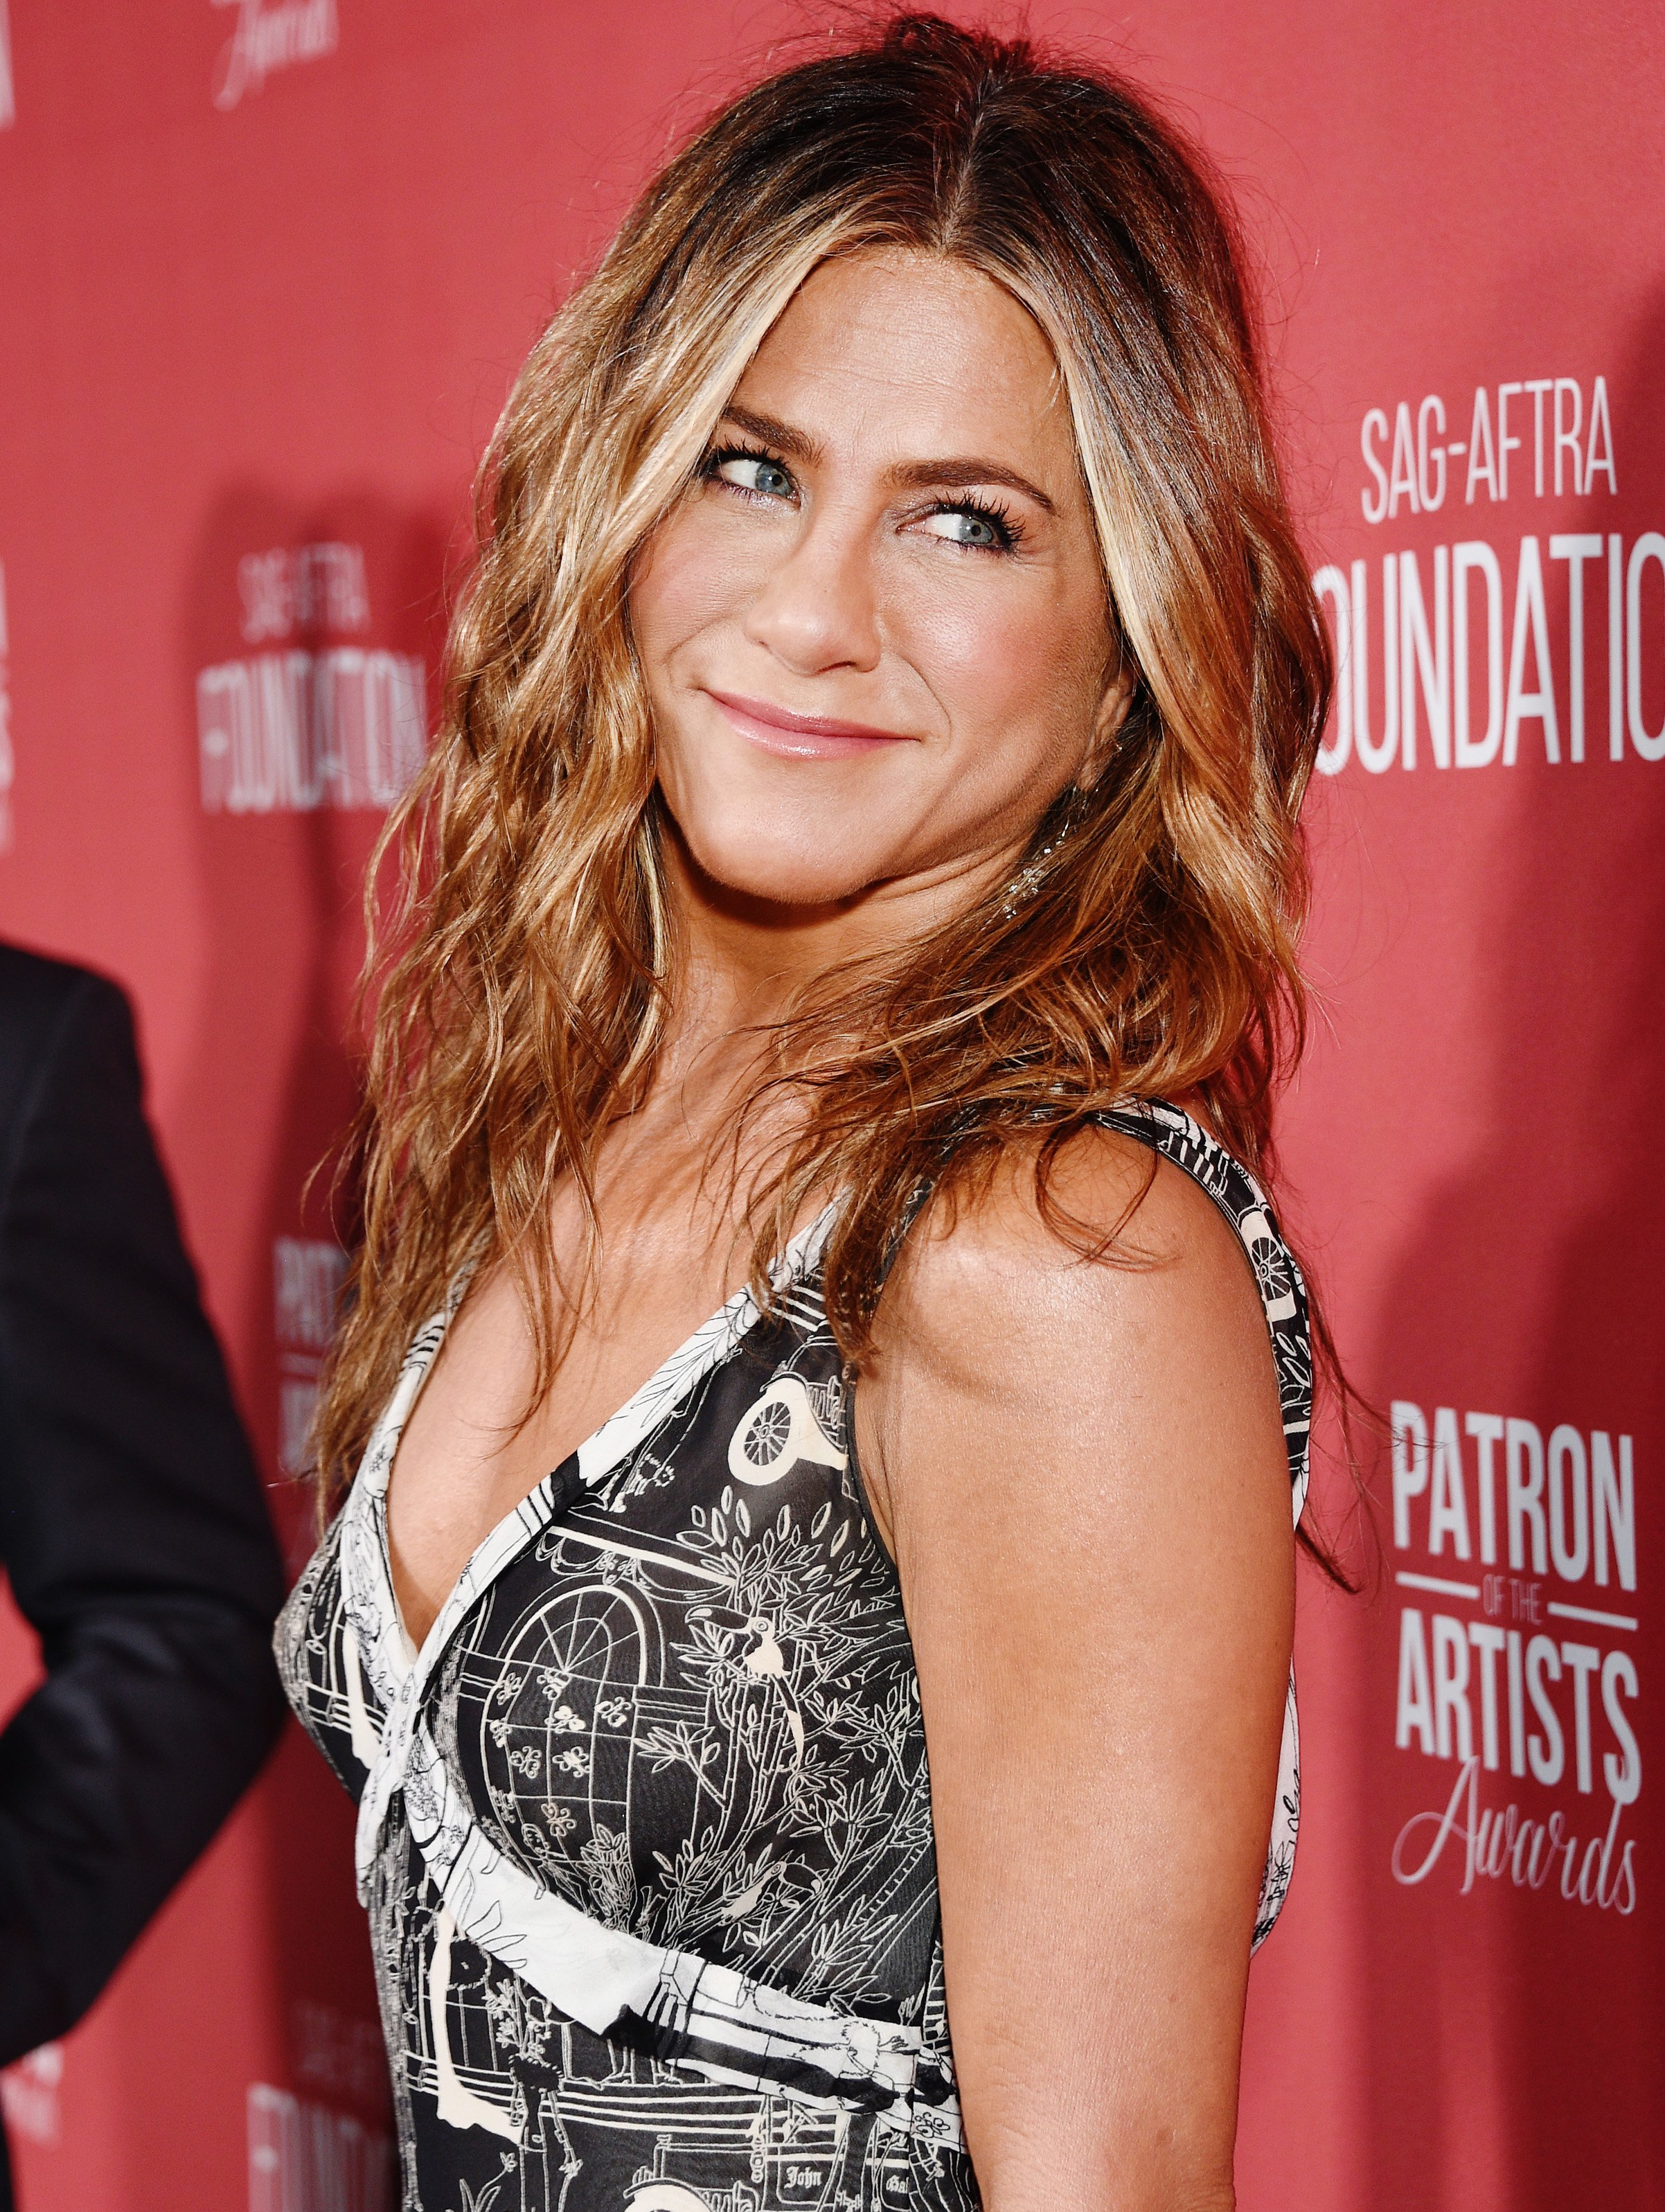 Jennifer Aniston attends the Patron of the Artists Awards in Beverly Hills, California on November 7, 2019 | Photo: Getty Images